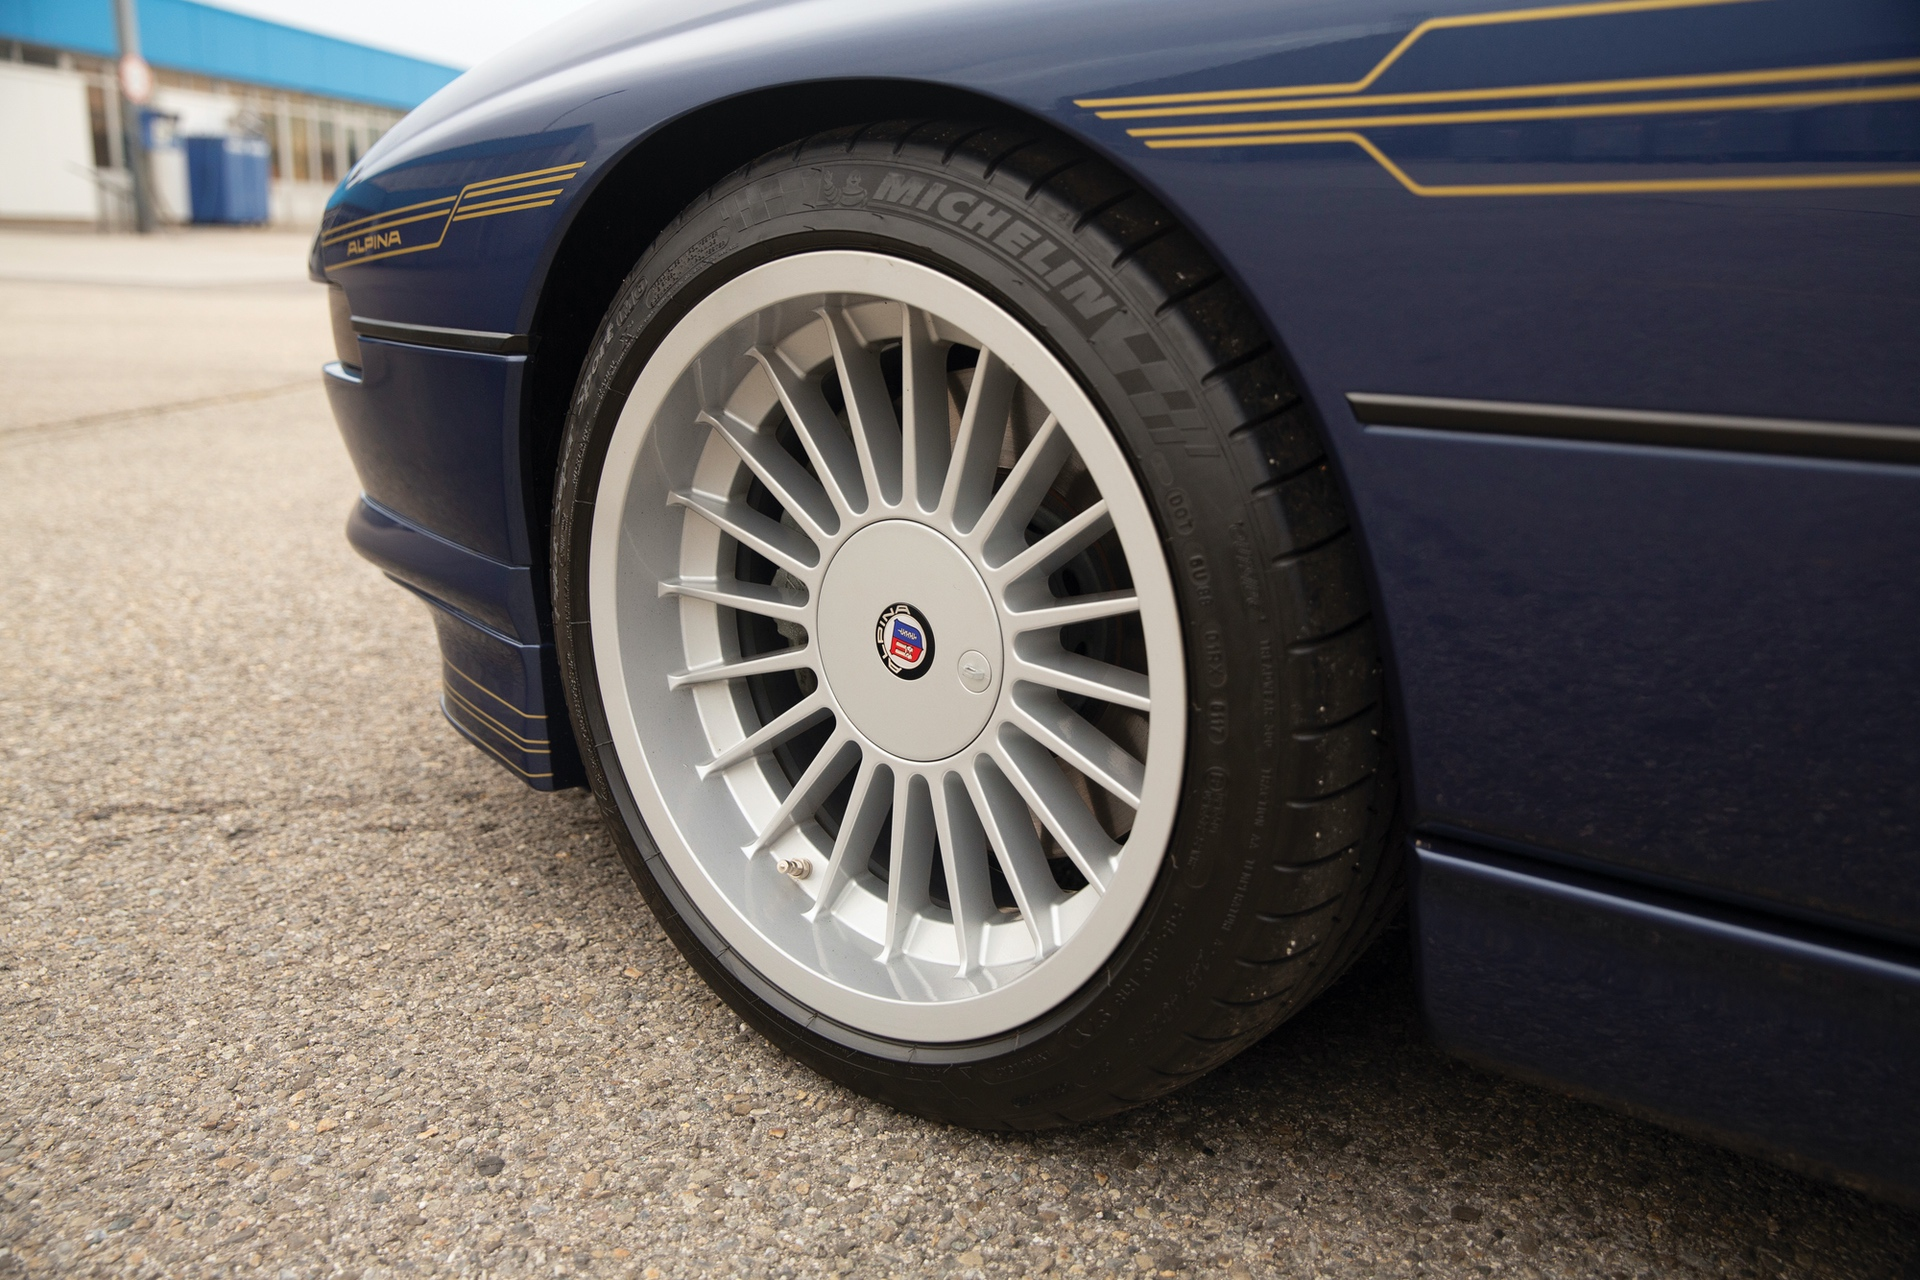 1993-BMW-Alpina-B12-5-7-Coupe-_23